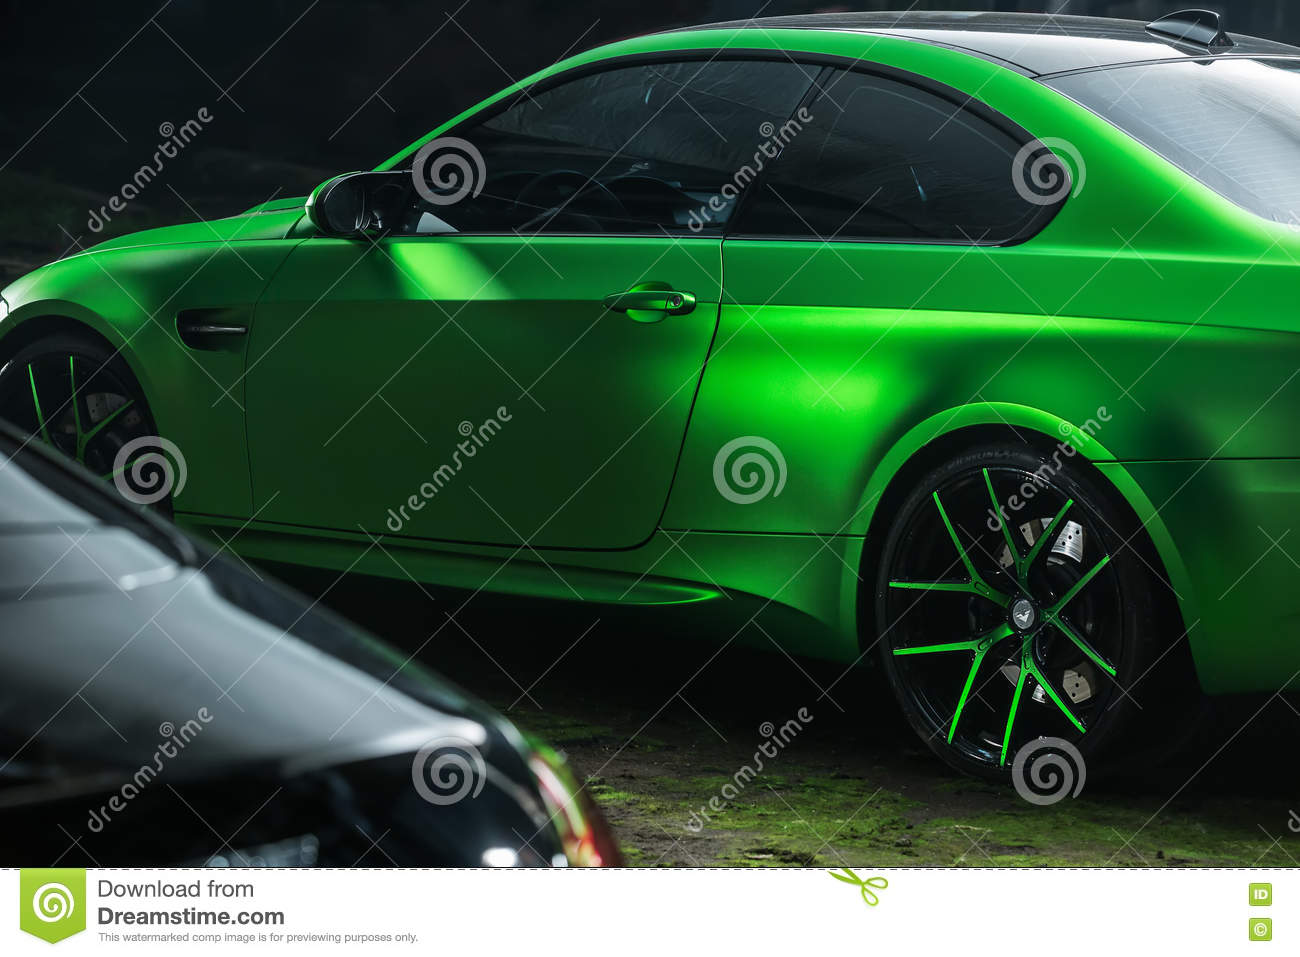 Bmw M3 Coupe Tuning Editorial Stock Image Image Of Acid 81128974